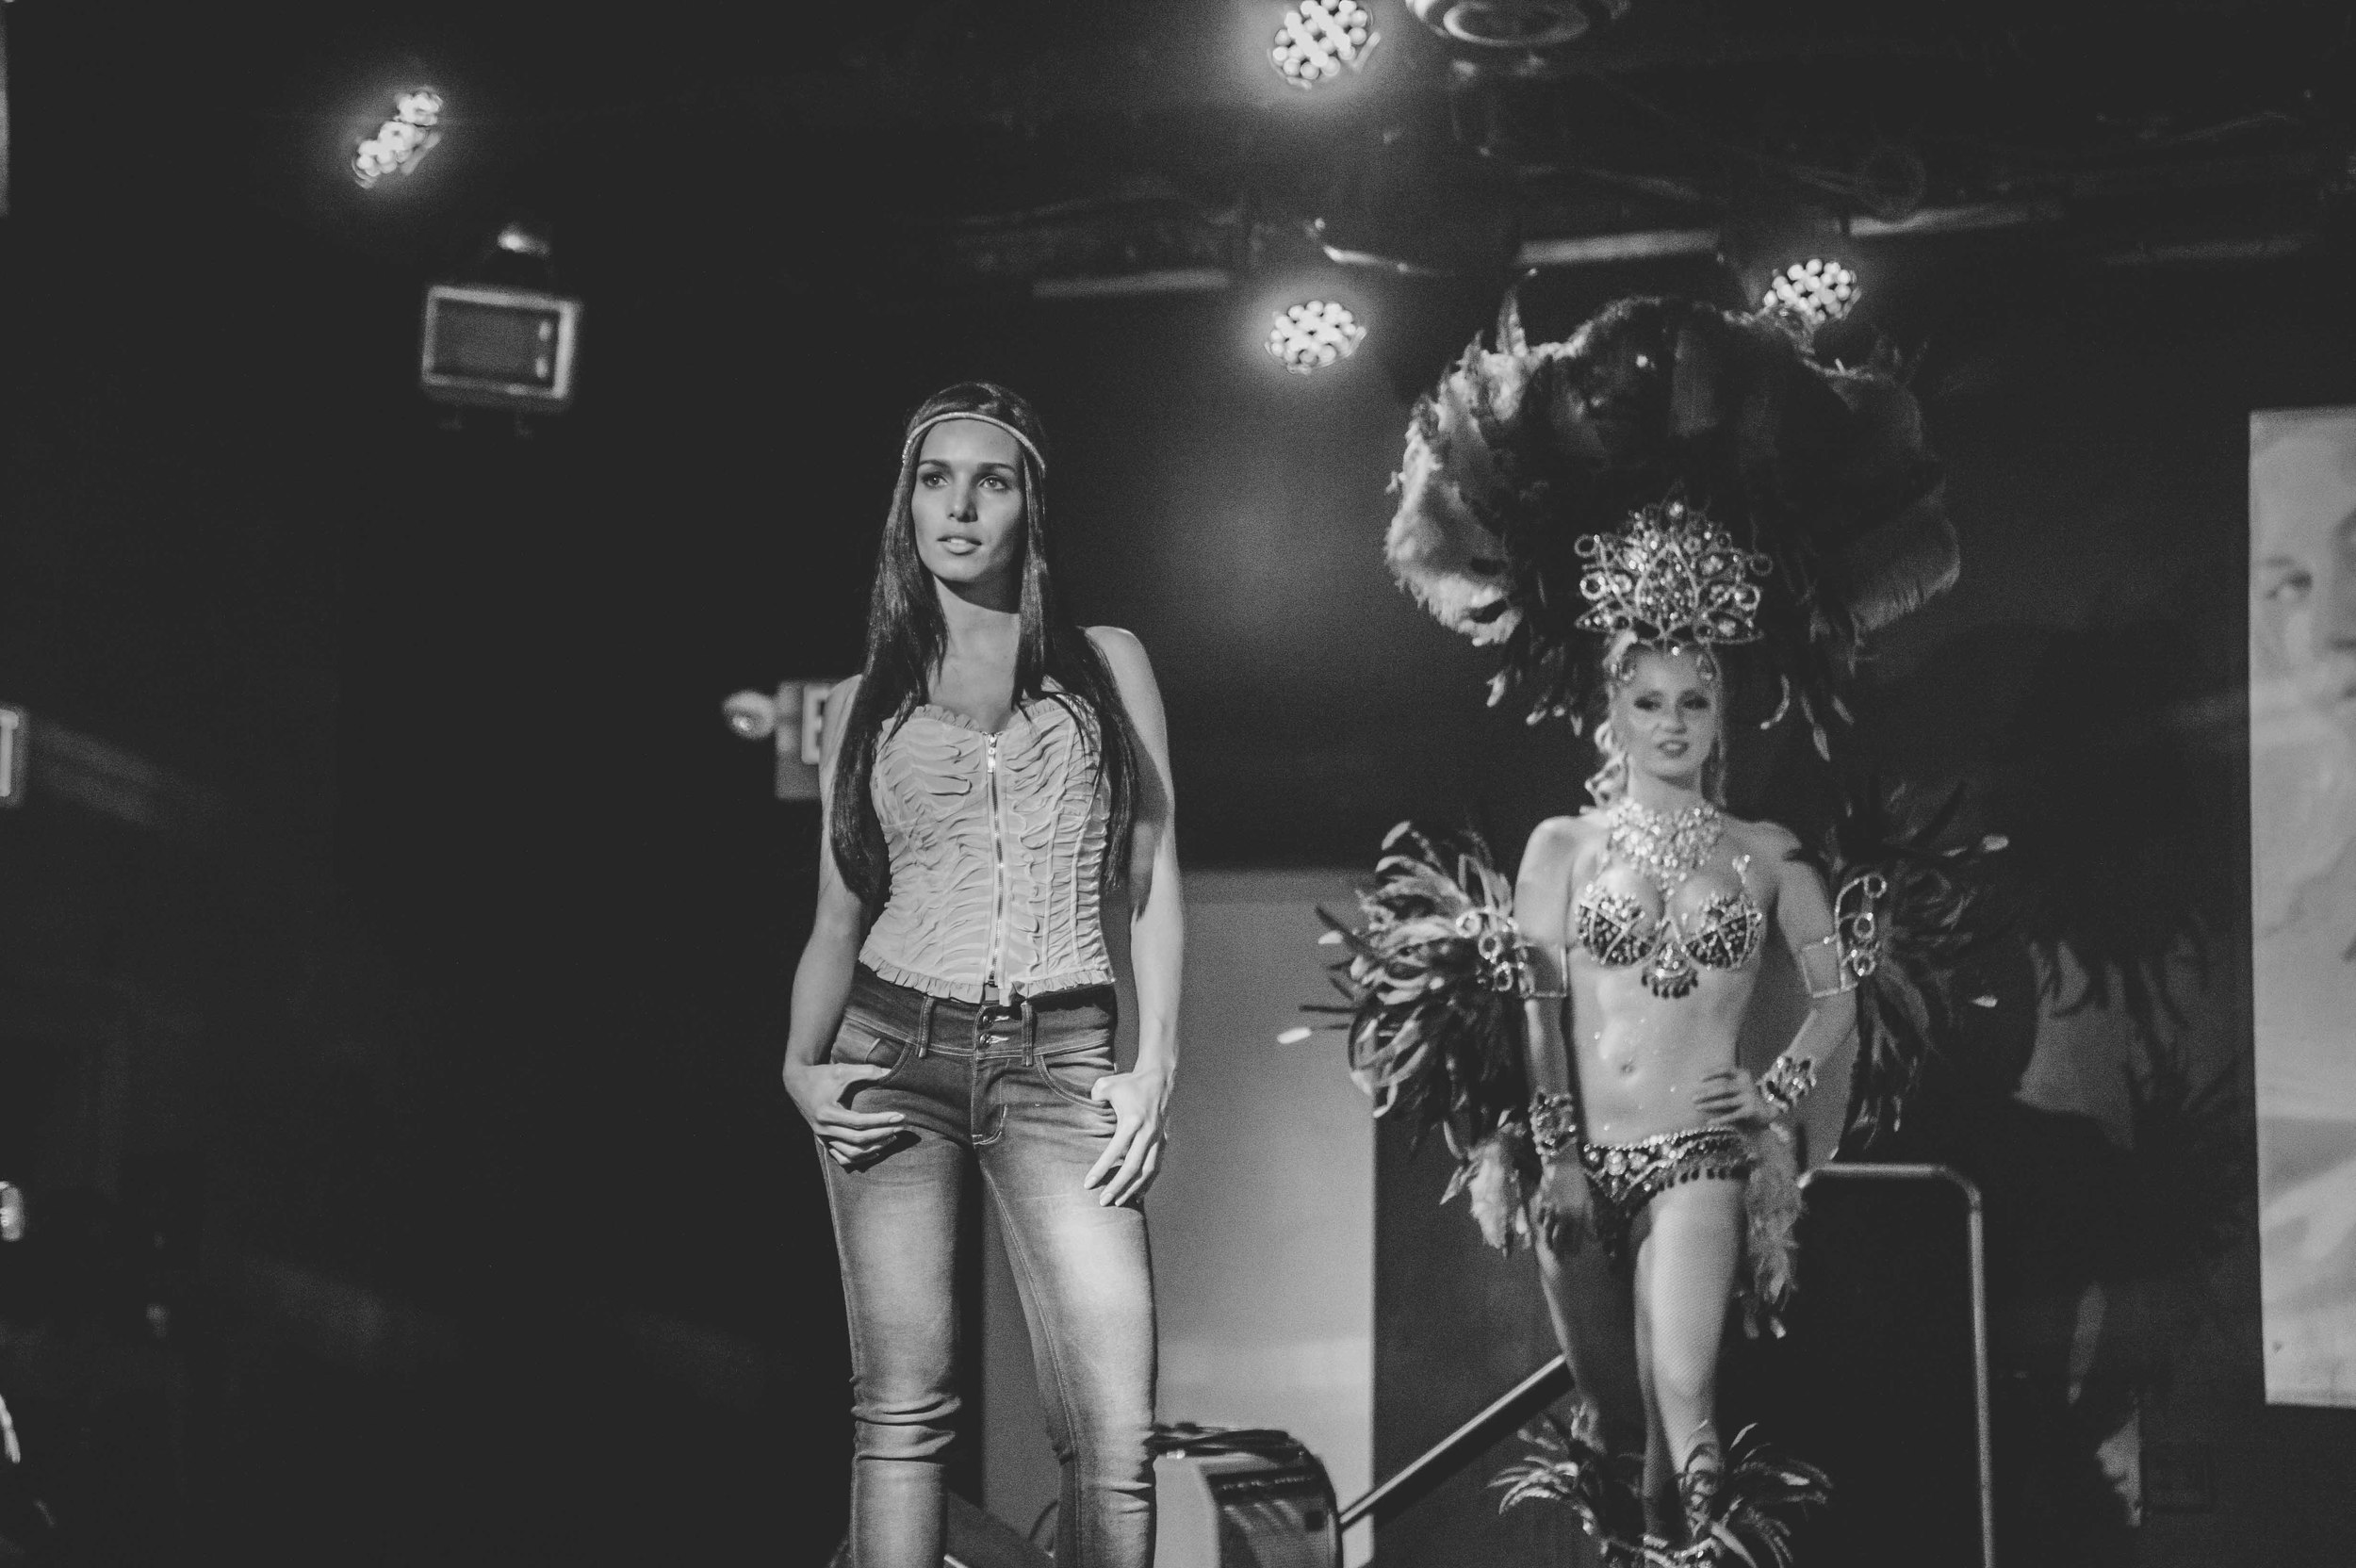 Vancouver event photography FiveSixty night club edward lai photographer